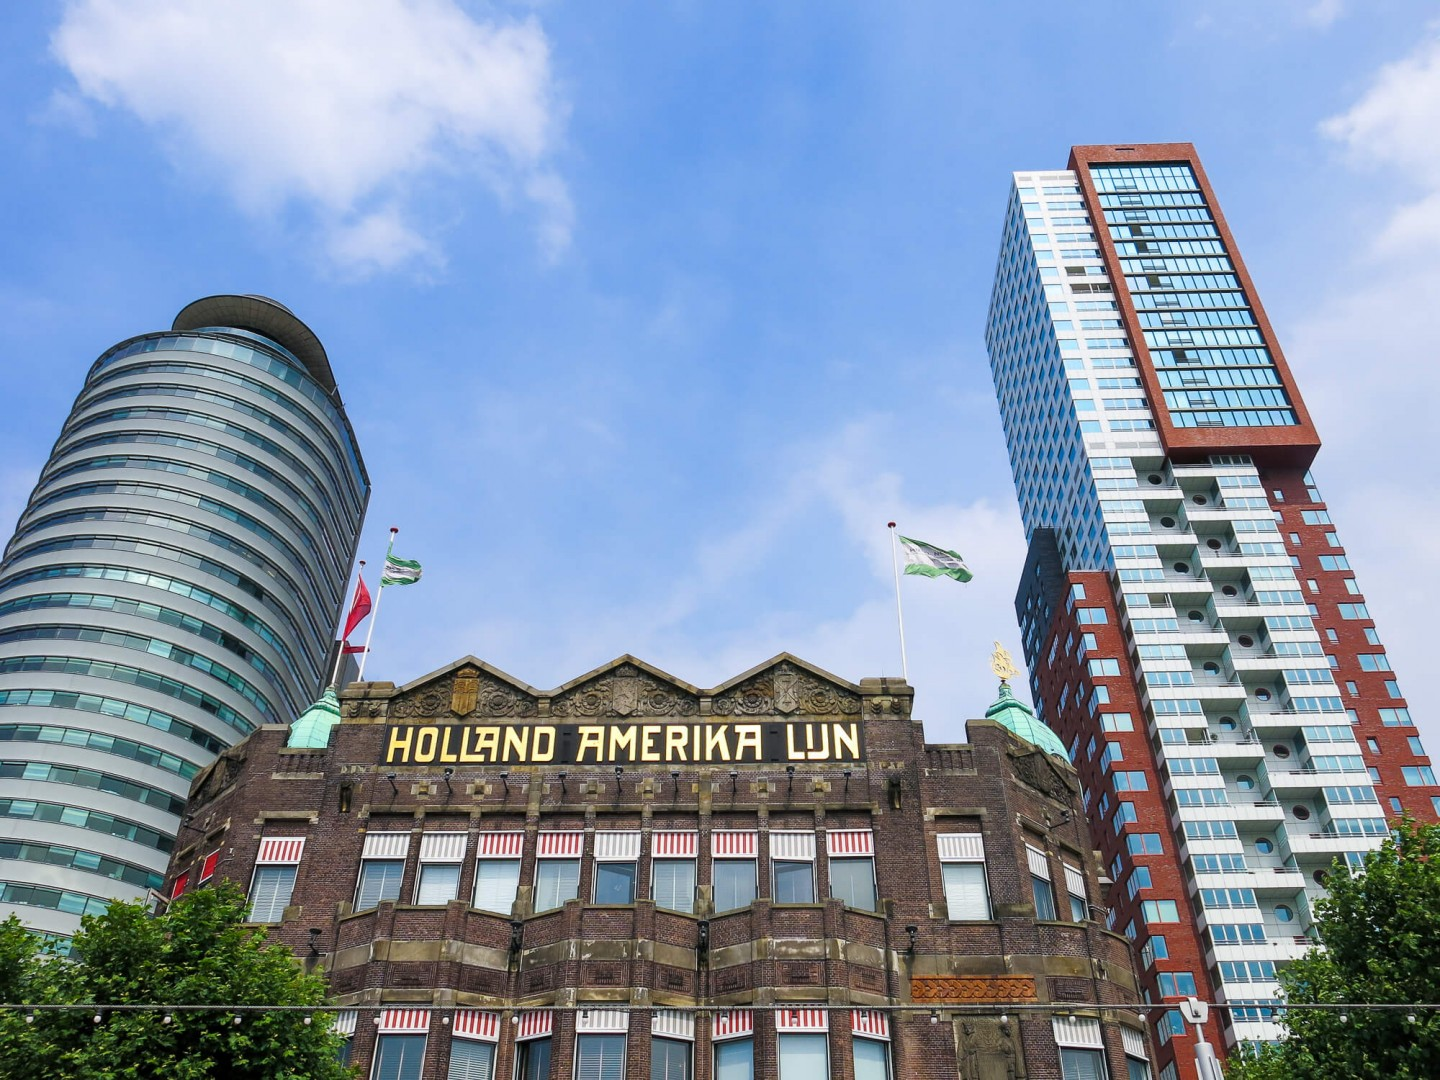 The old and new architecture in Rotterdam.